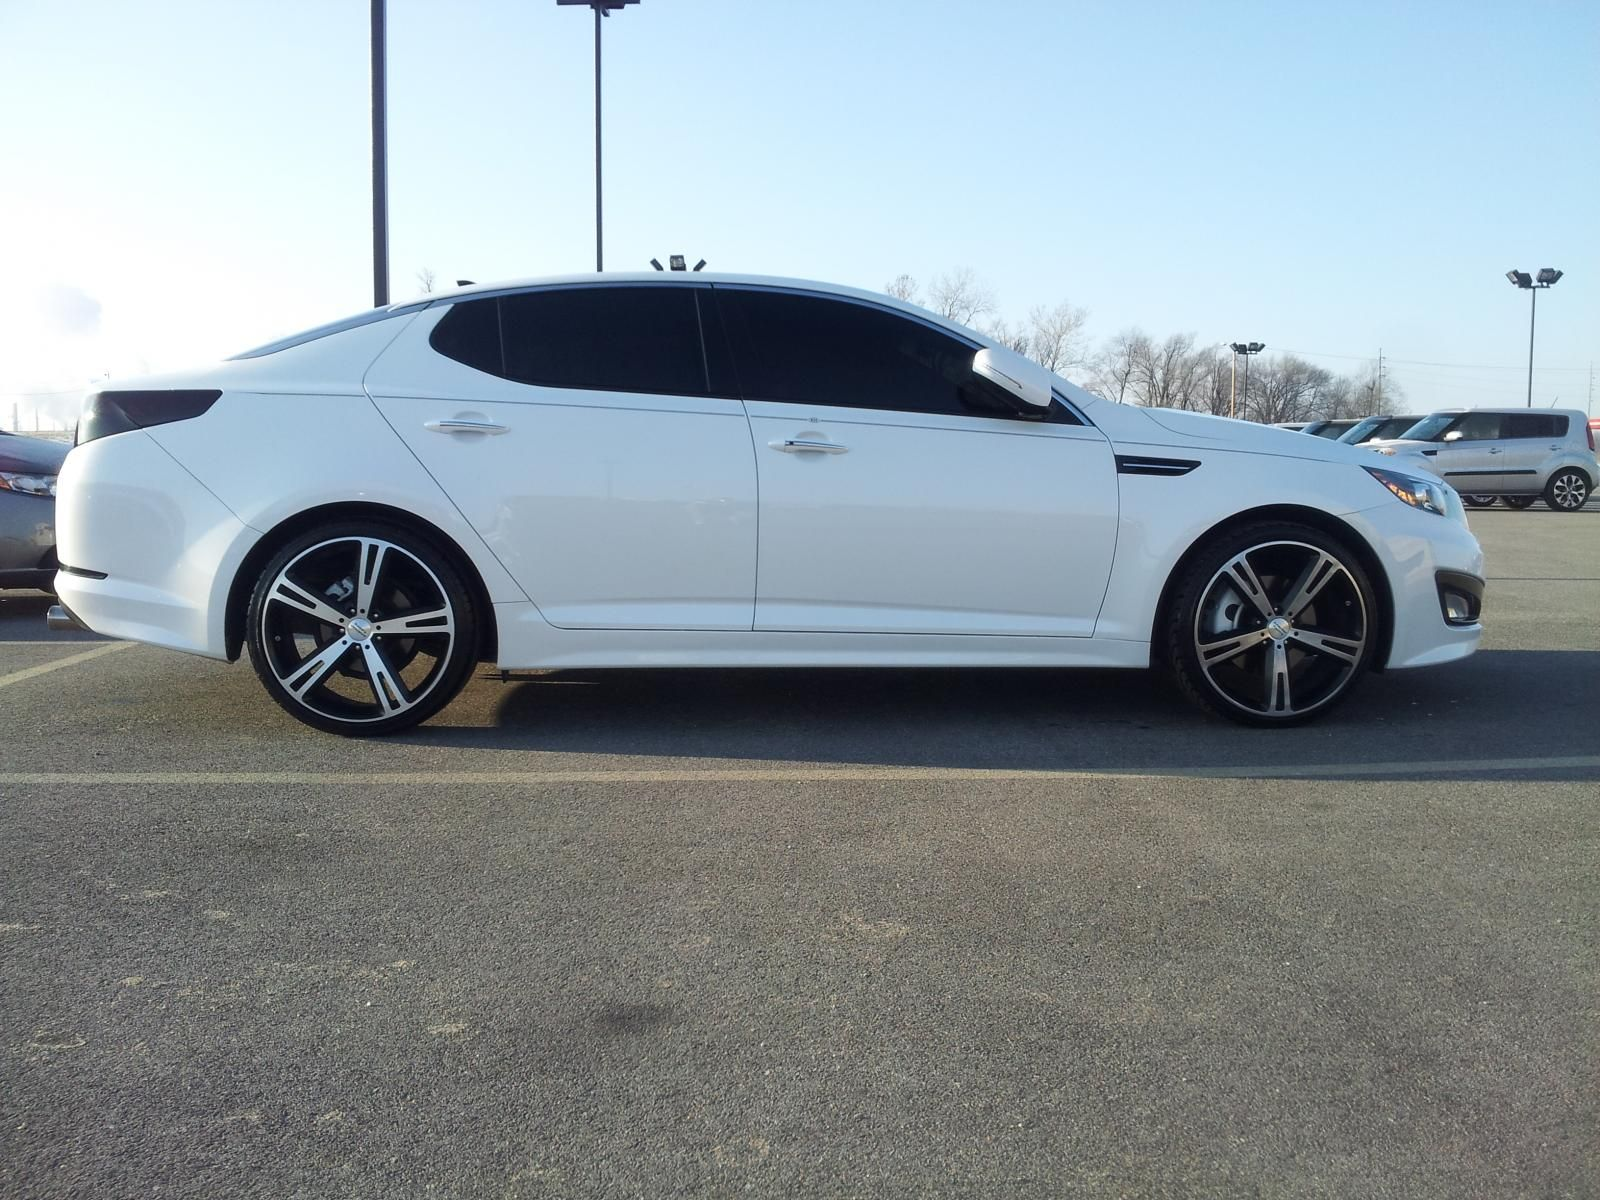 Kia optima murdered out oh my it doesn t get better than that cars pinterest kia optima cars and dream cars